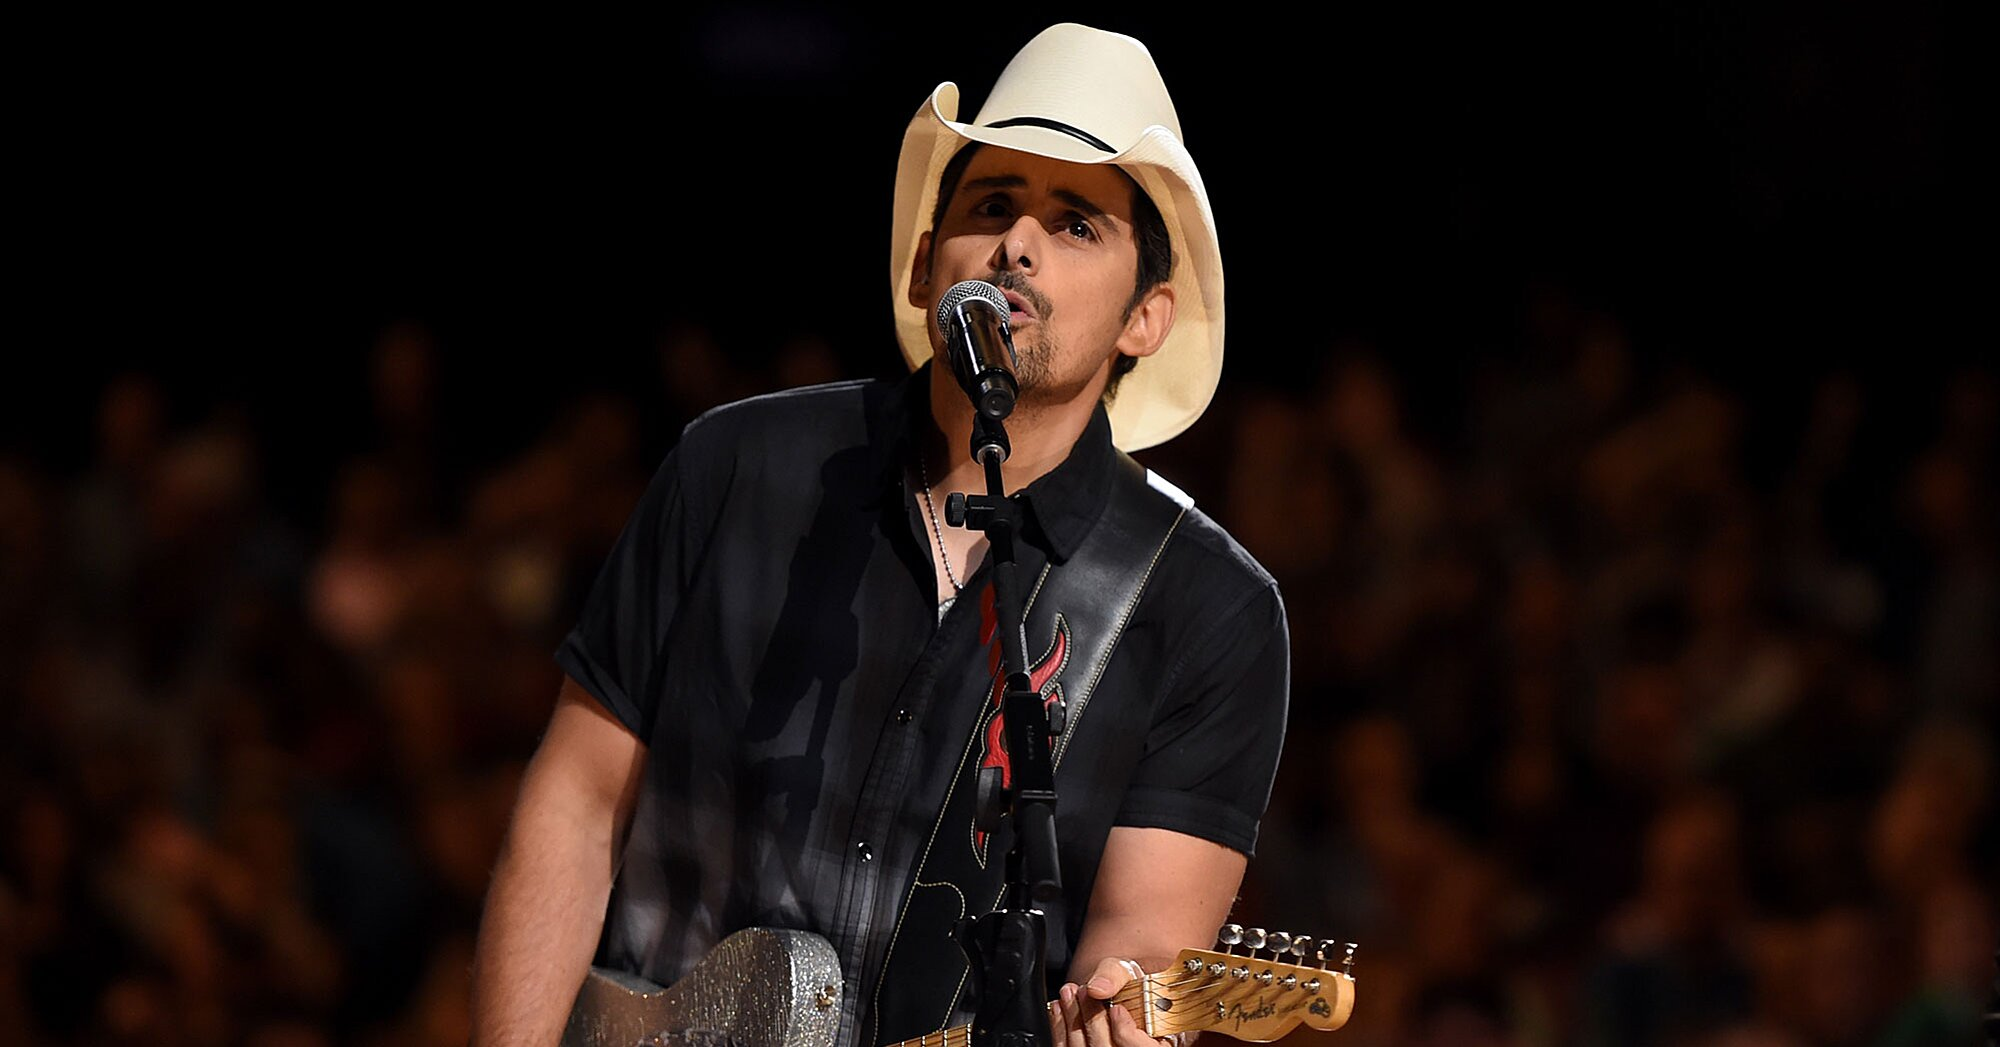 Brad Paisley and more help Grand Ole Opry celebrate 95 years: 'It's given us comfort during this time'